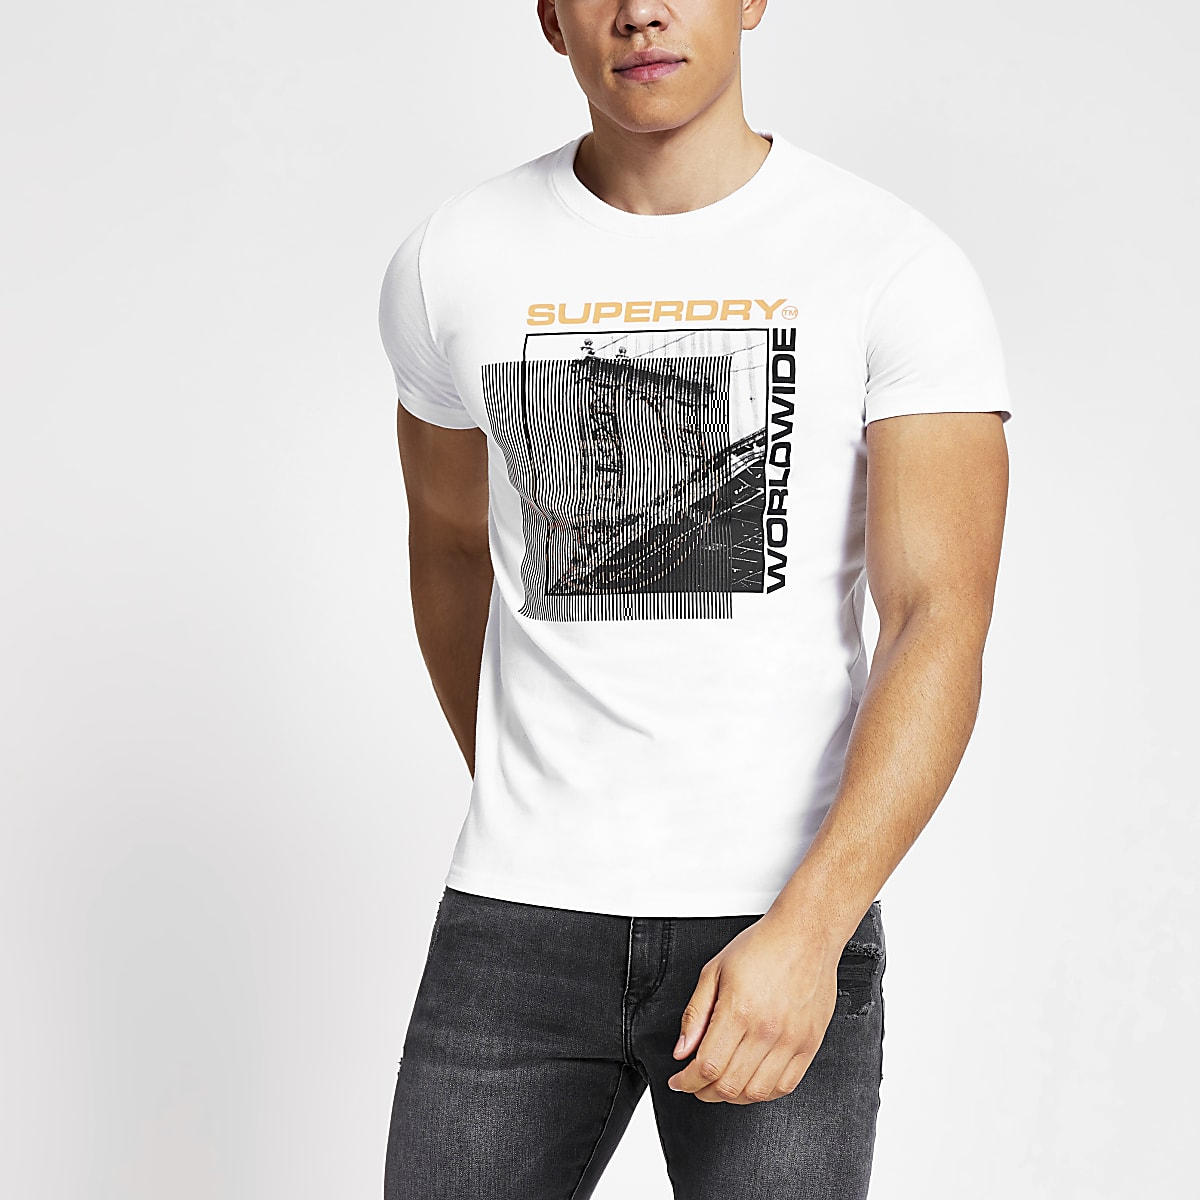 Superdry white printed short sleeve T-shirt